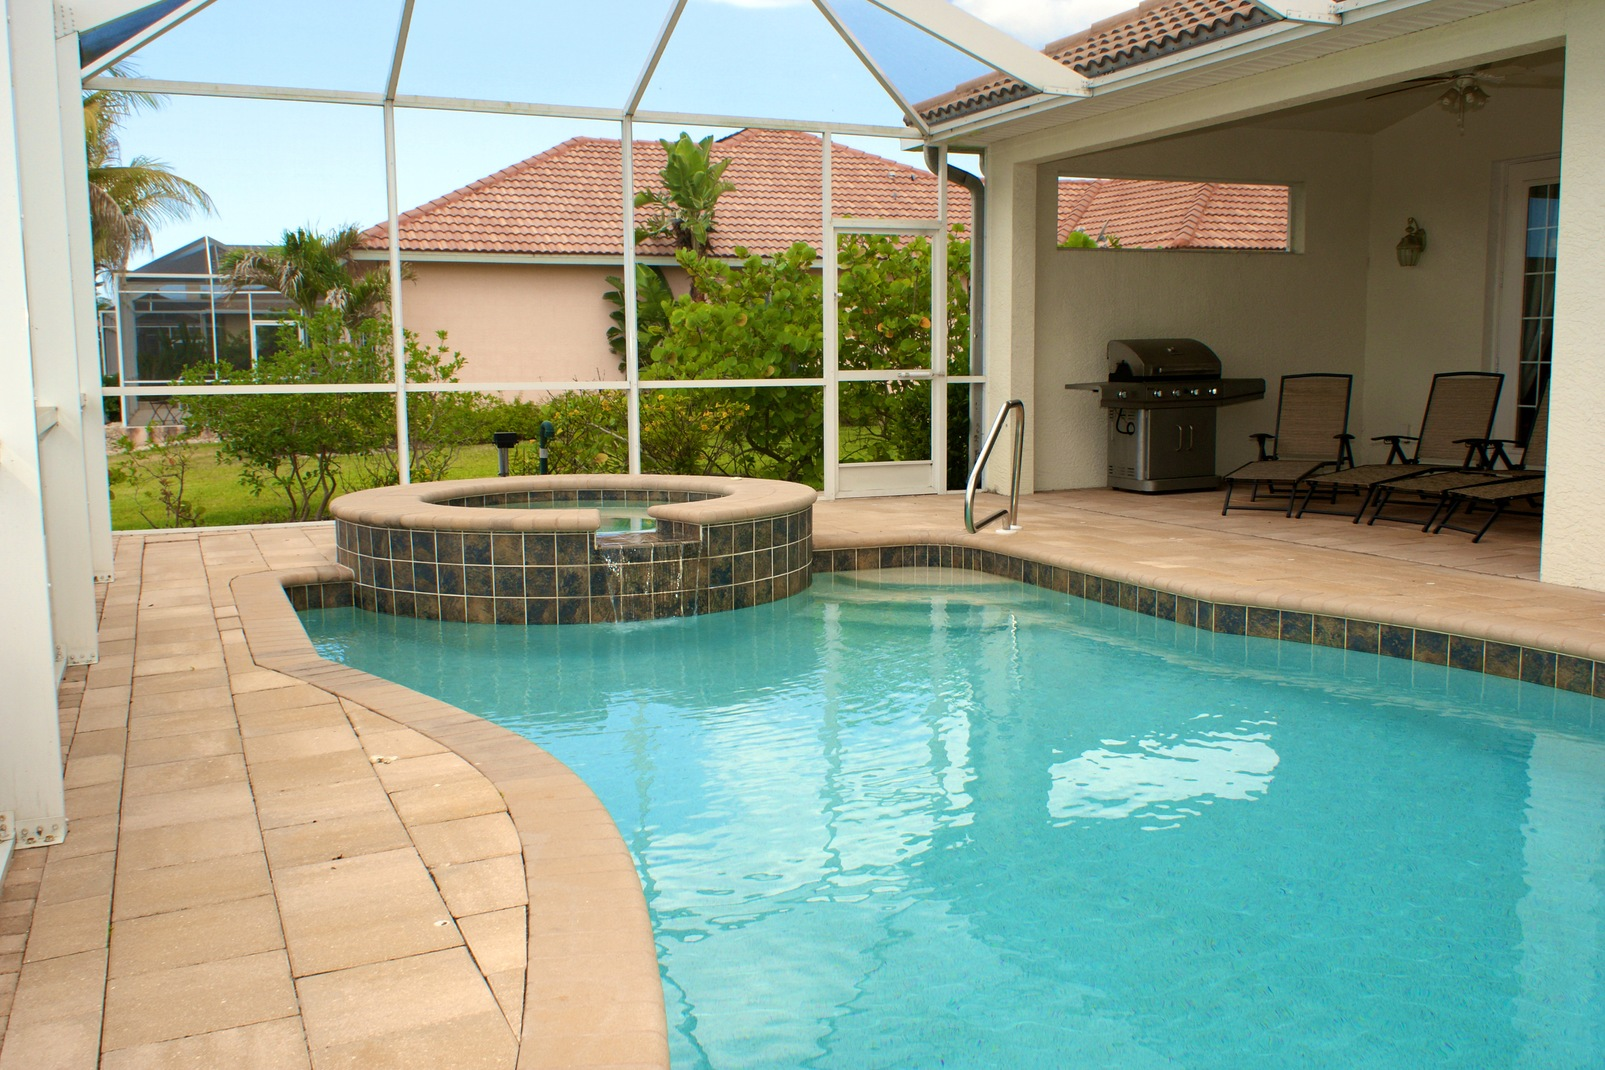 Should You Repair Or Replace A Damaged Pool Enclosure